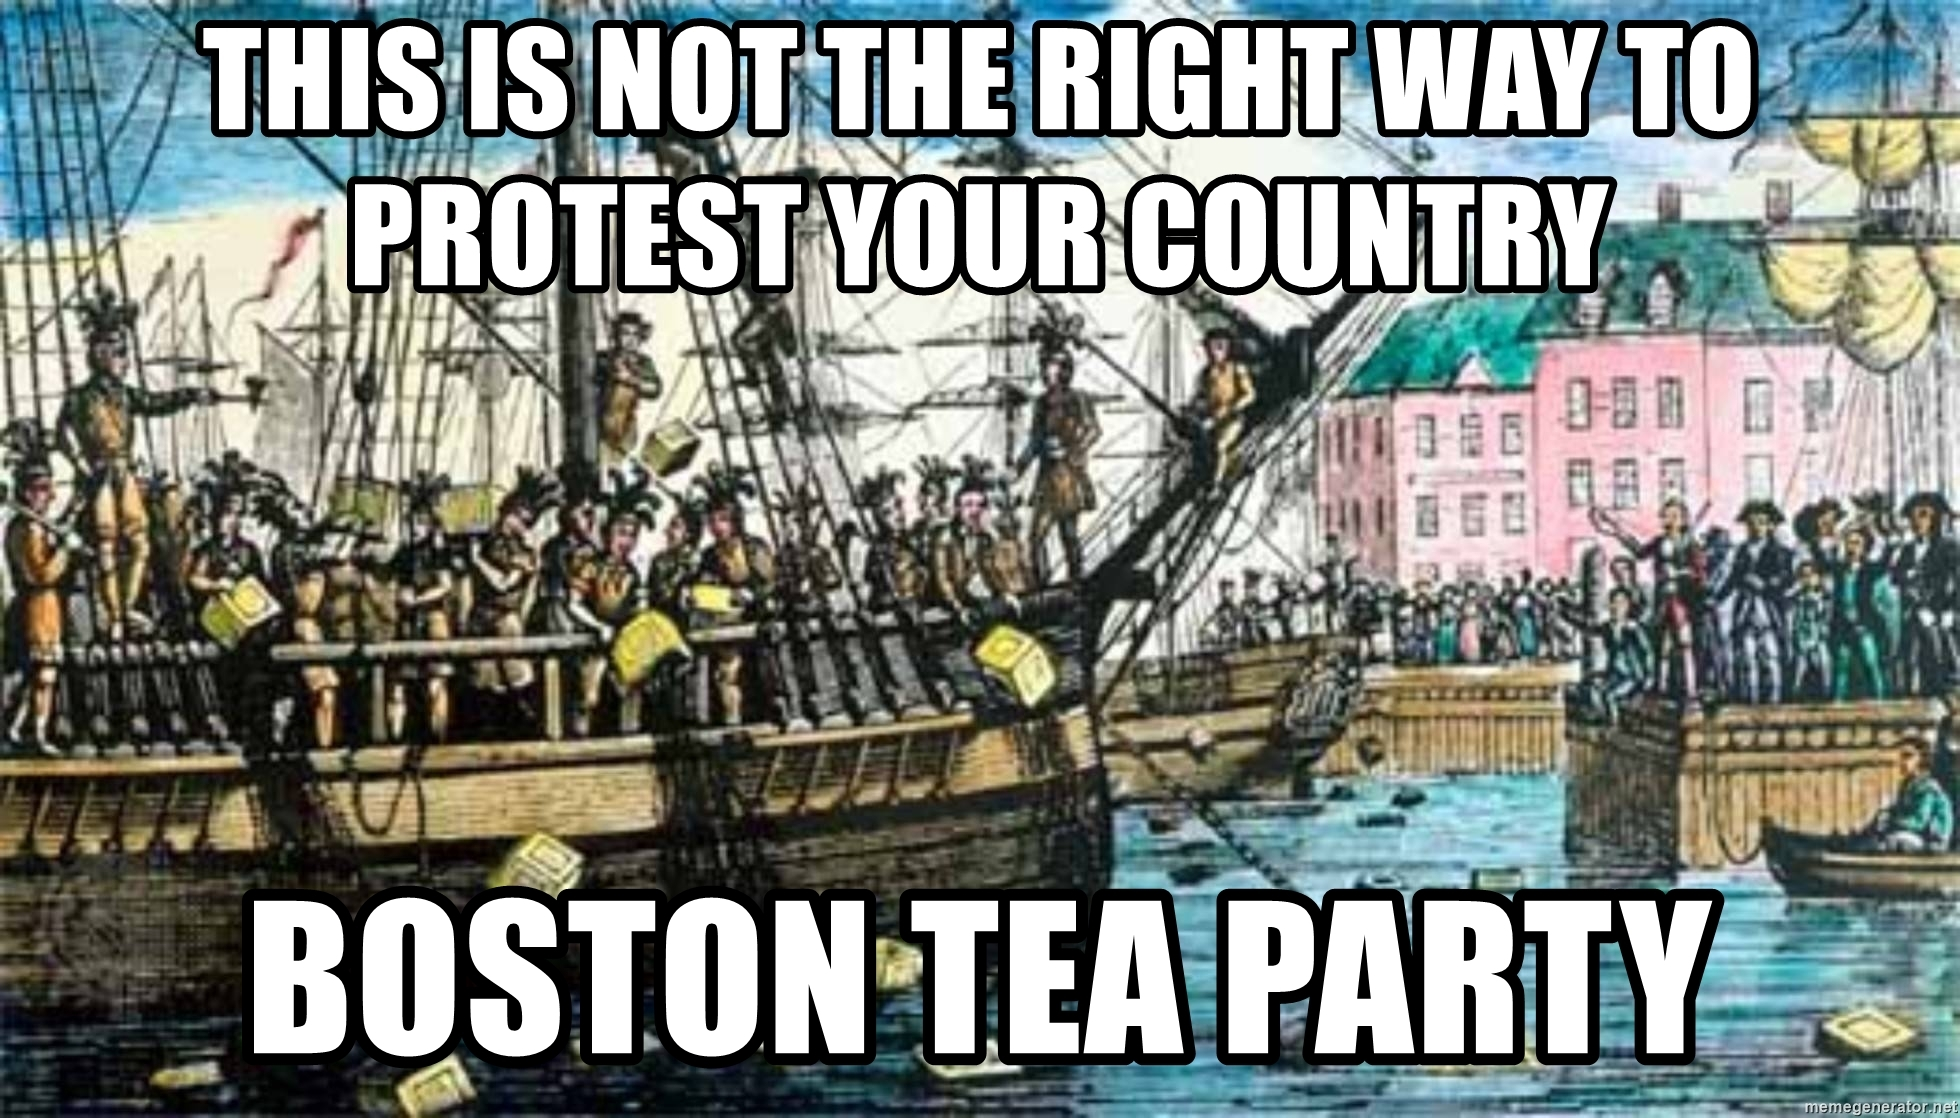 this-is-not-the-right-way-to-protest-your-country-boston-tea-party.jpg